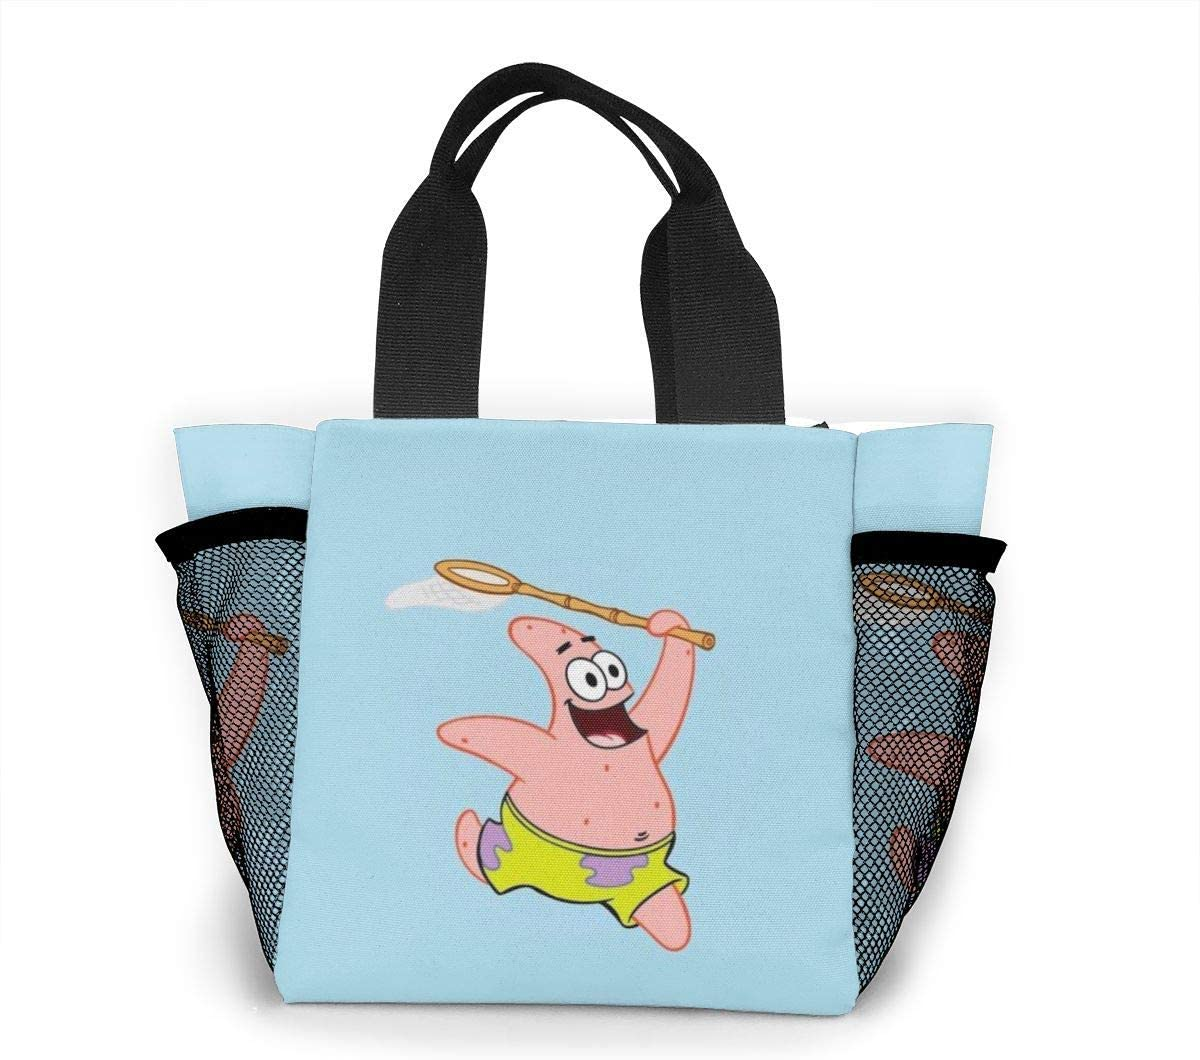 Patrick Star Lunch Bag Tote Bag Lunch Bag Adult Lunch Tote Bag For Men Or Women Lunch Box Lunch Container